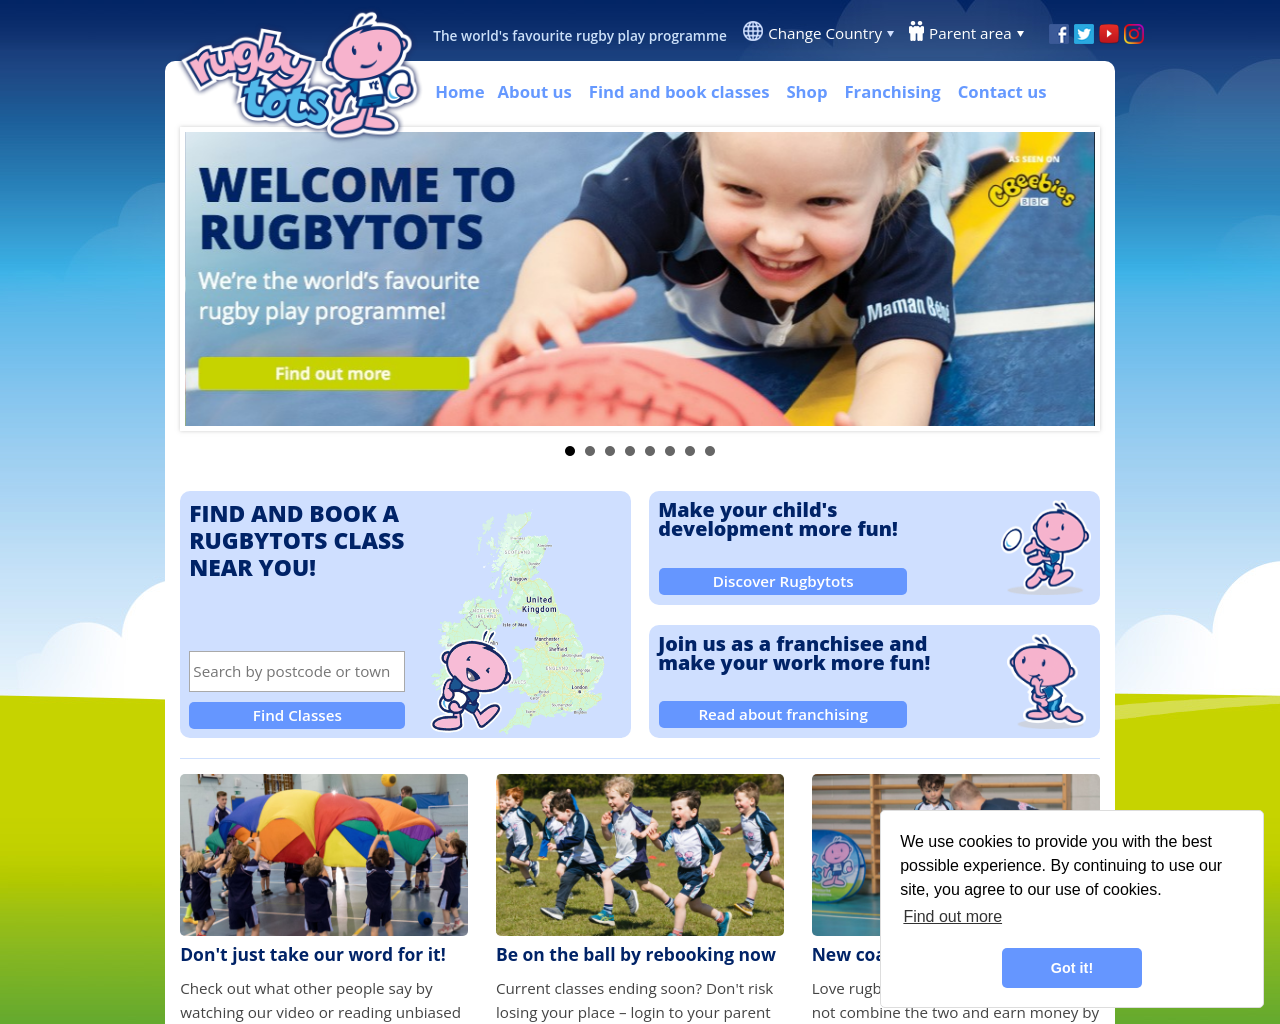 Find local rugby classes